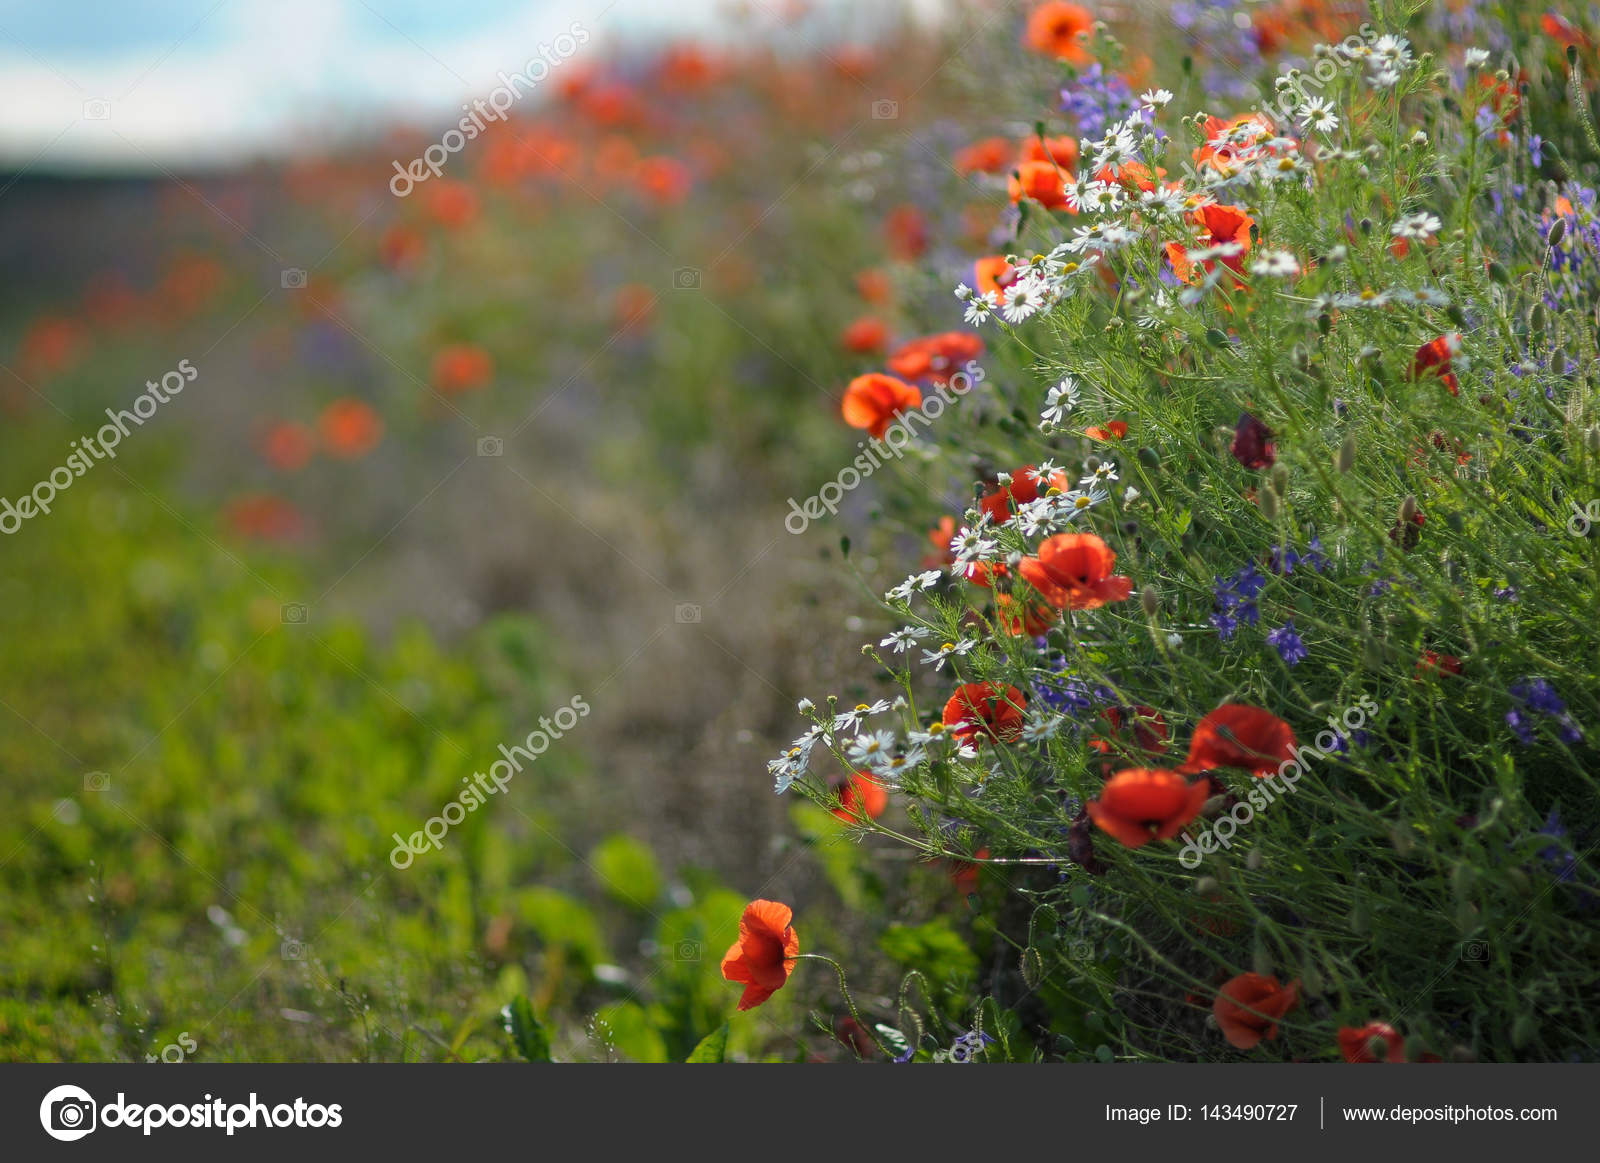 Wild flowers daisies and poppies along field paths stock photo wild flowers daisies and poppies along field paths stock photo izmirmasajfo Gallery